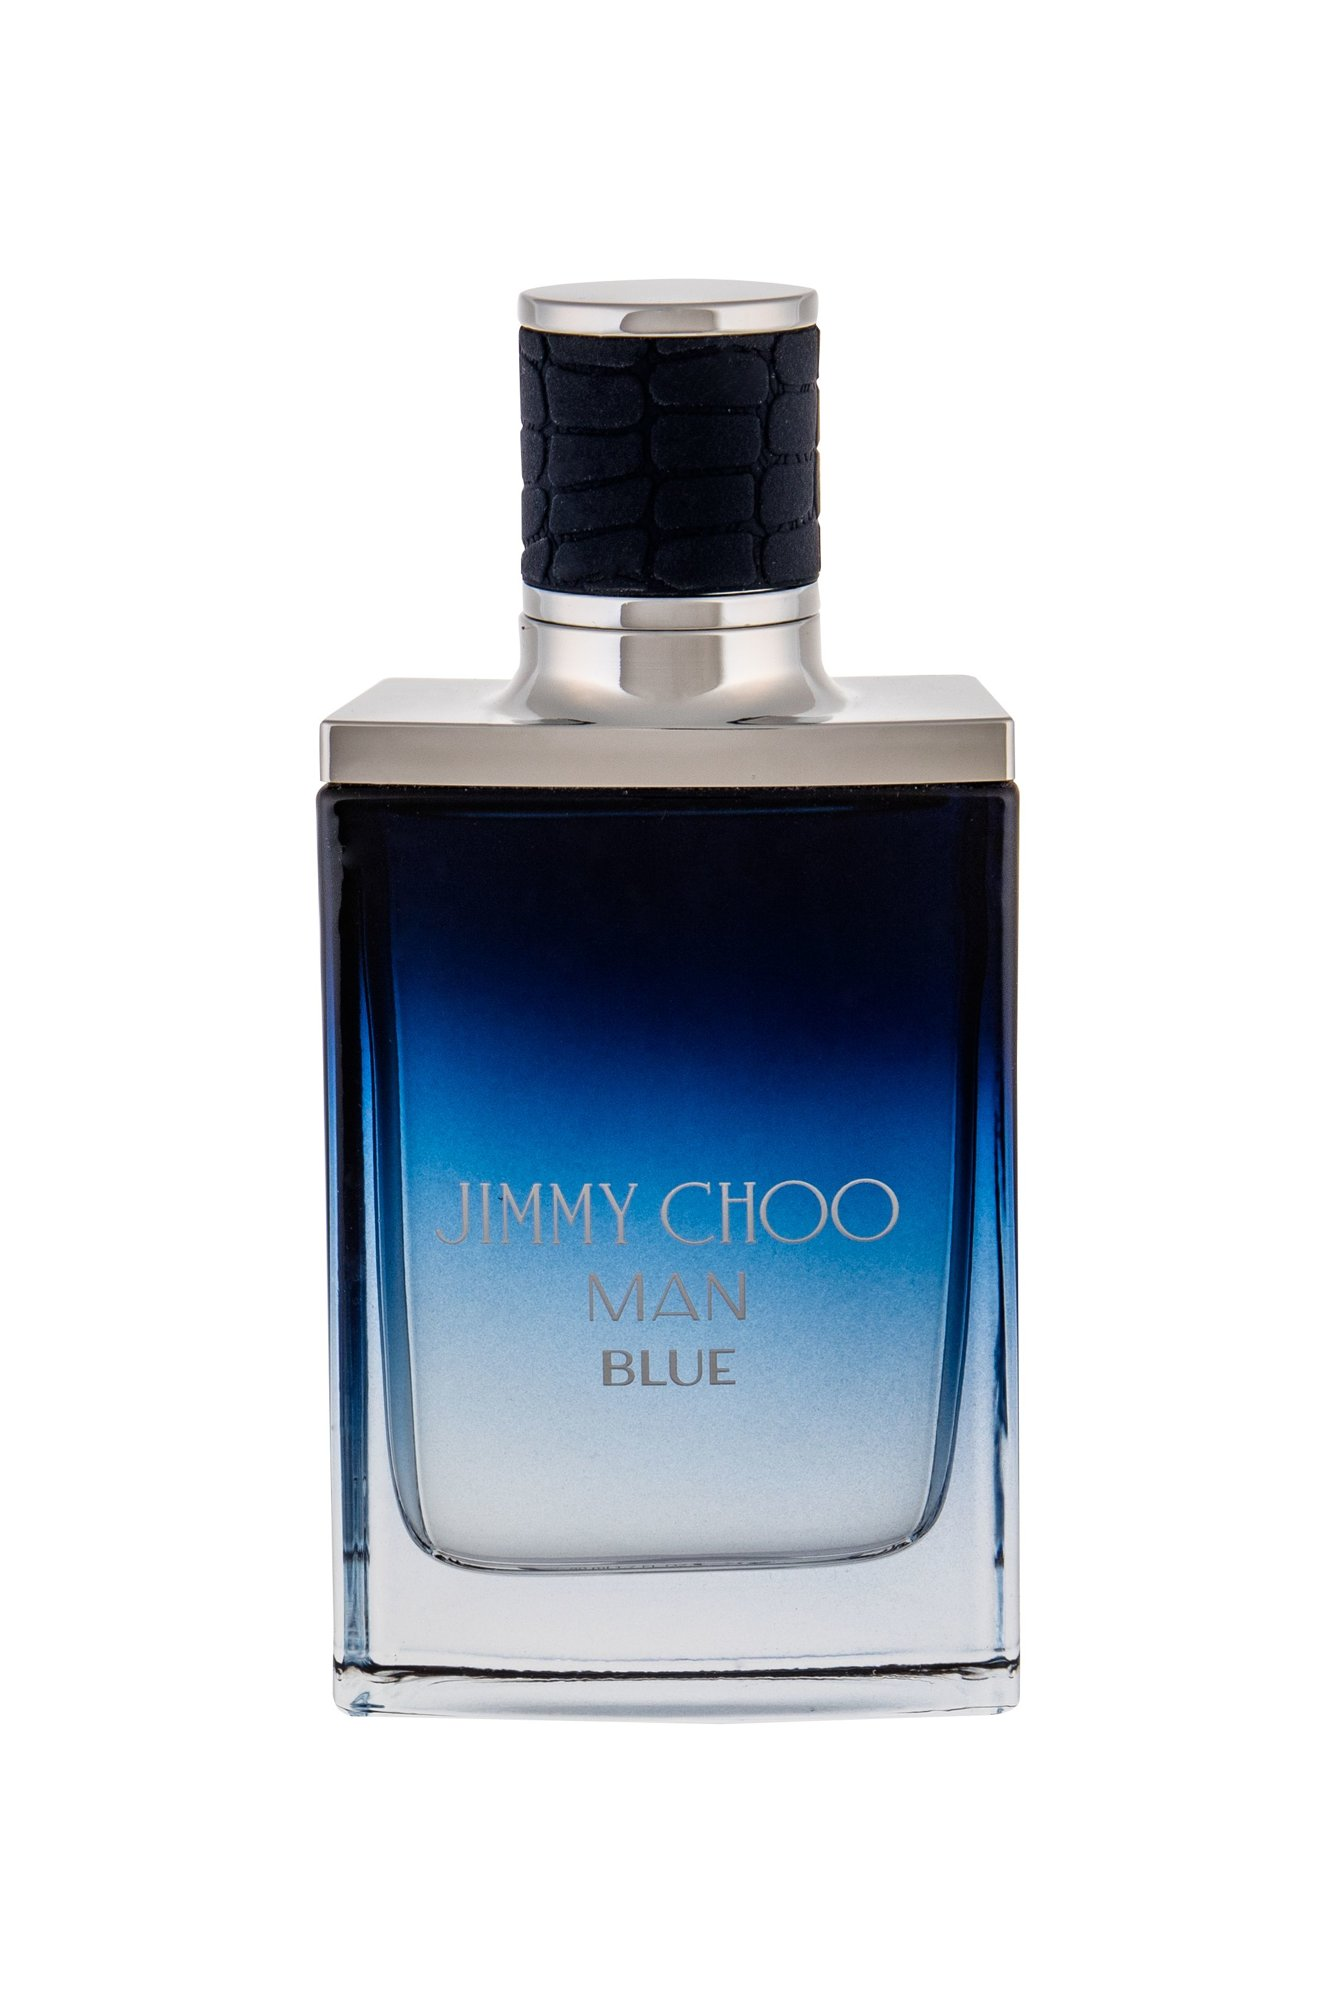 Jimmy Choo Jimmy Choo Man Blue Eau de Toilette 50ml